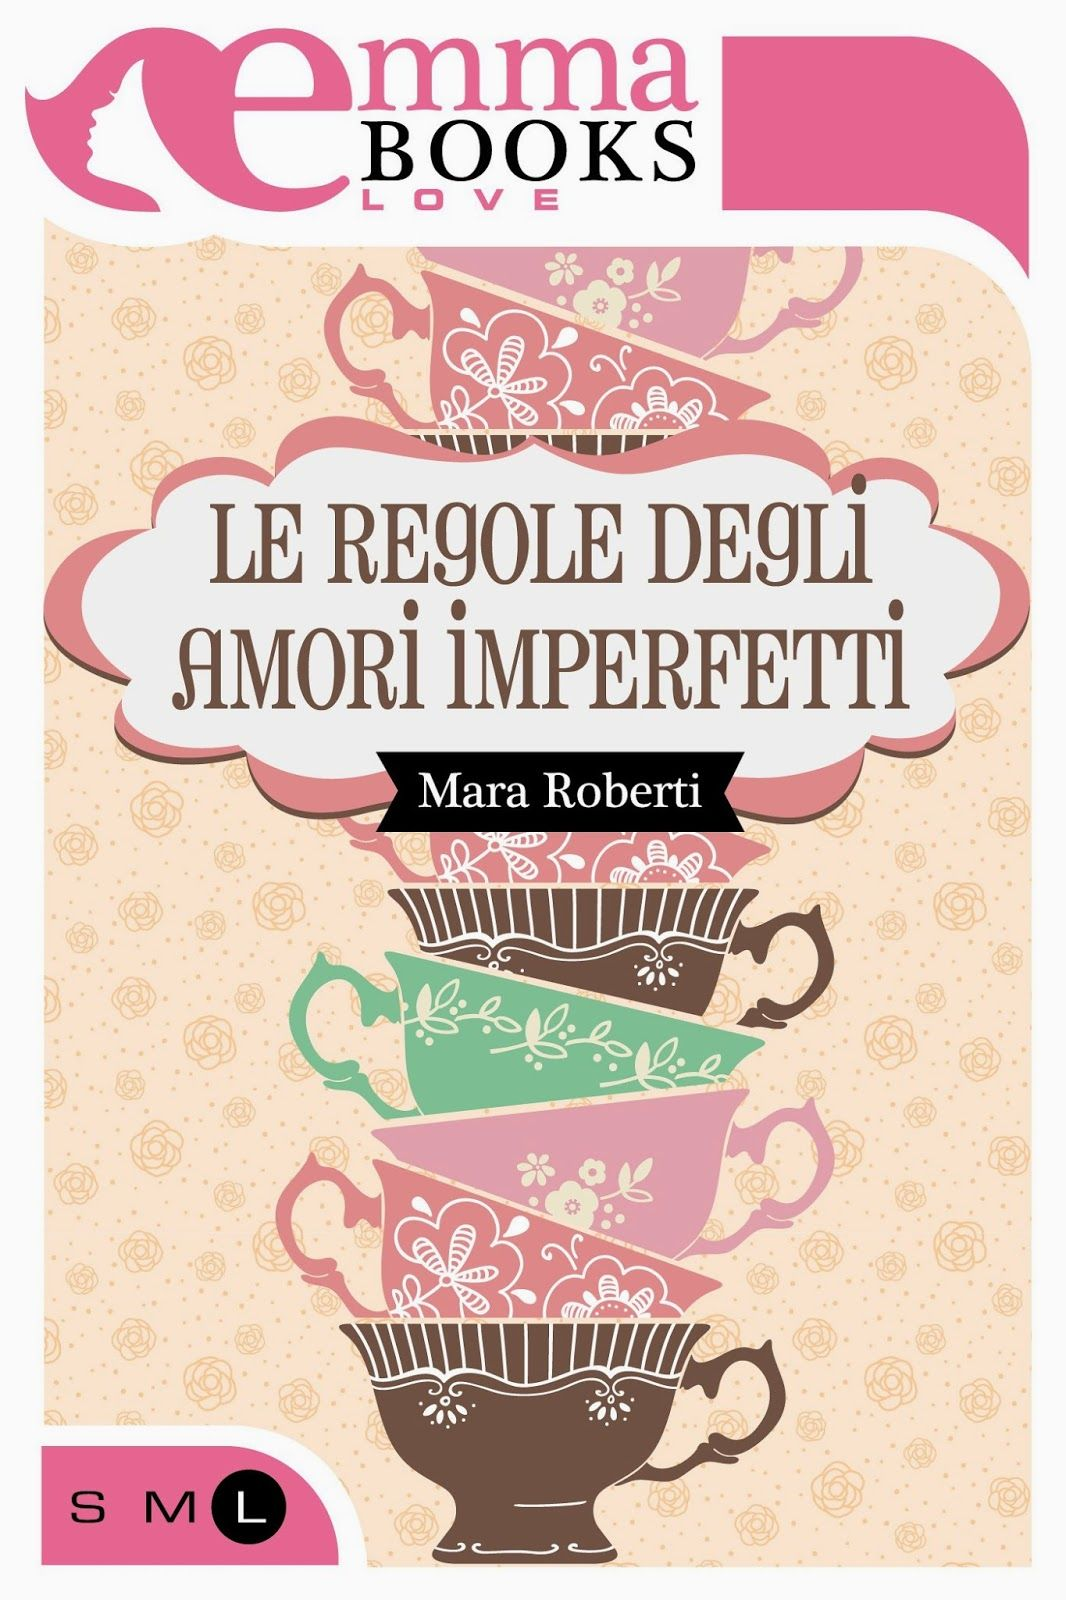 Romance and Fantasy for Cosmopolitan Girls: Le regole degli amori imperfetti di Mara Roberti